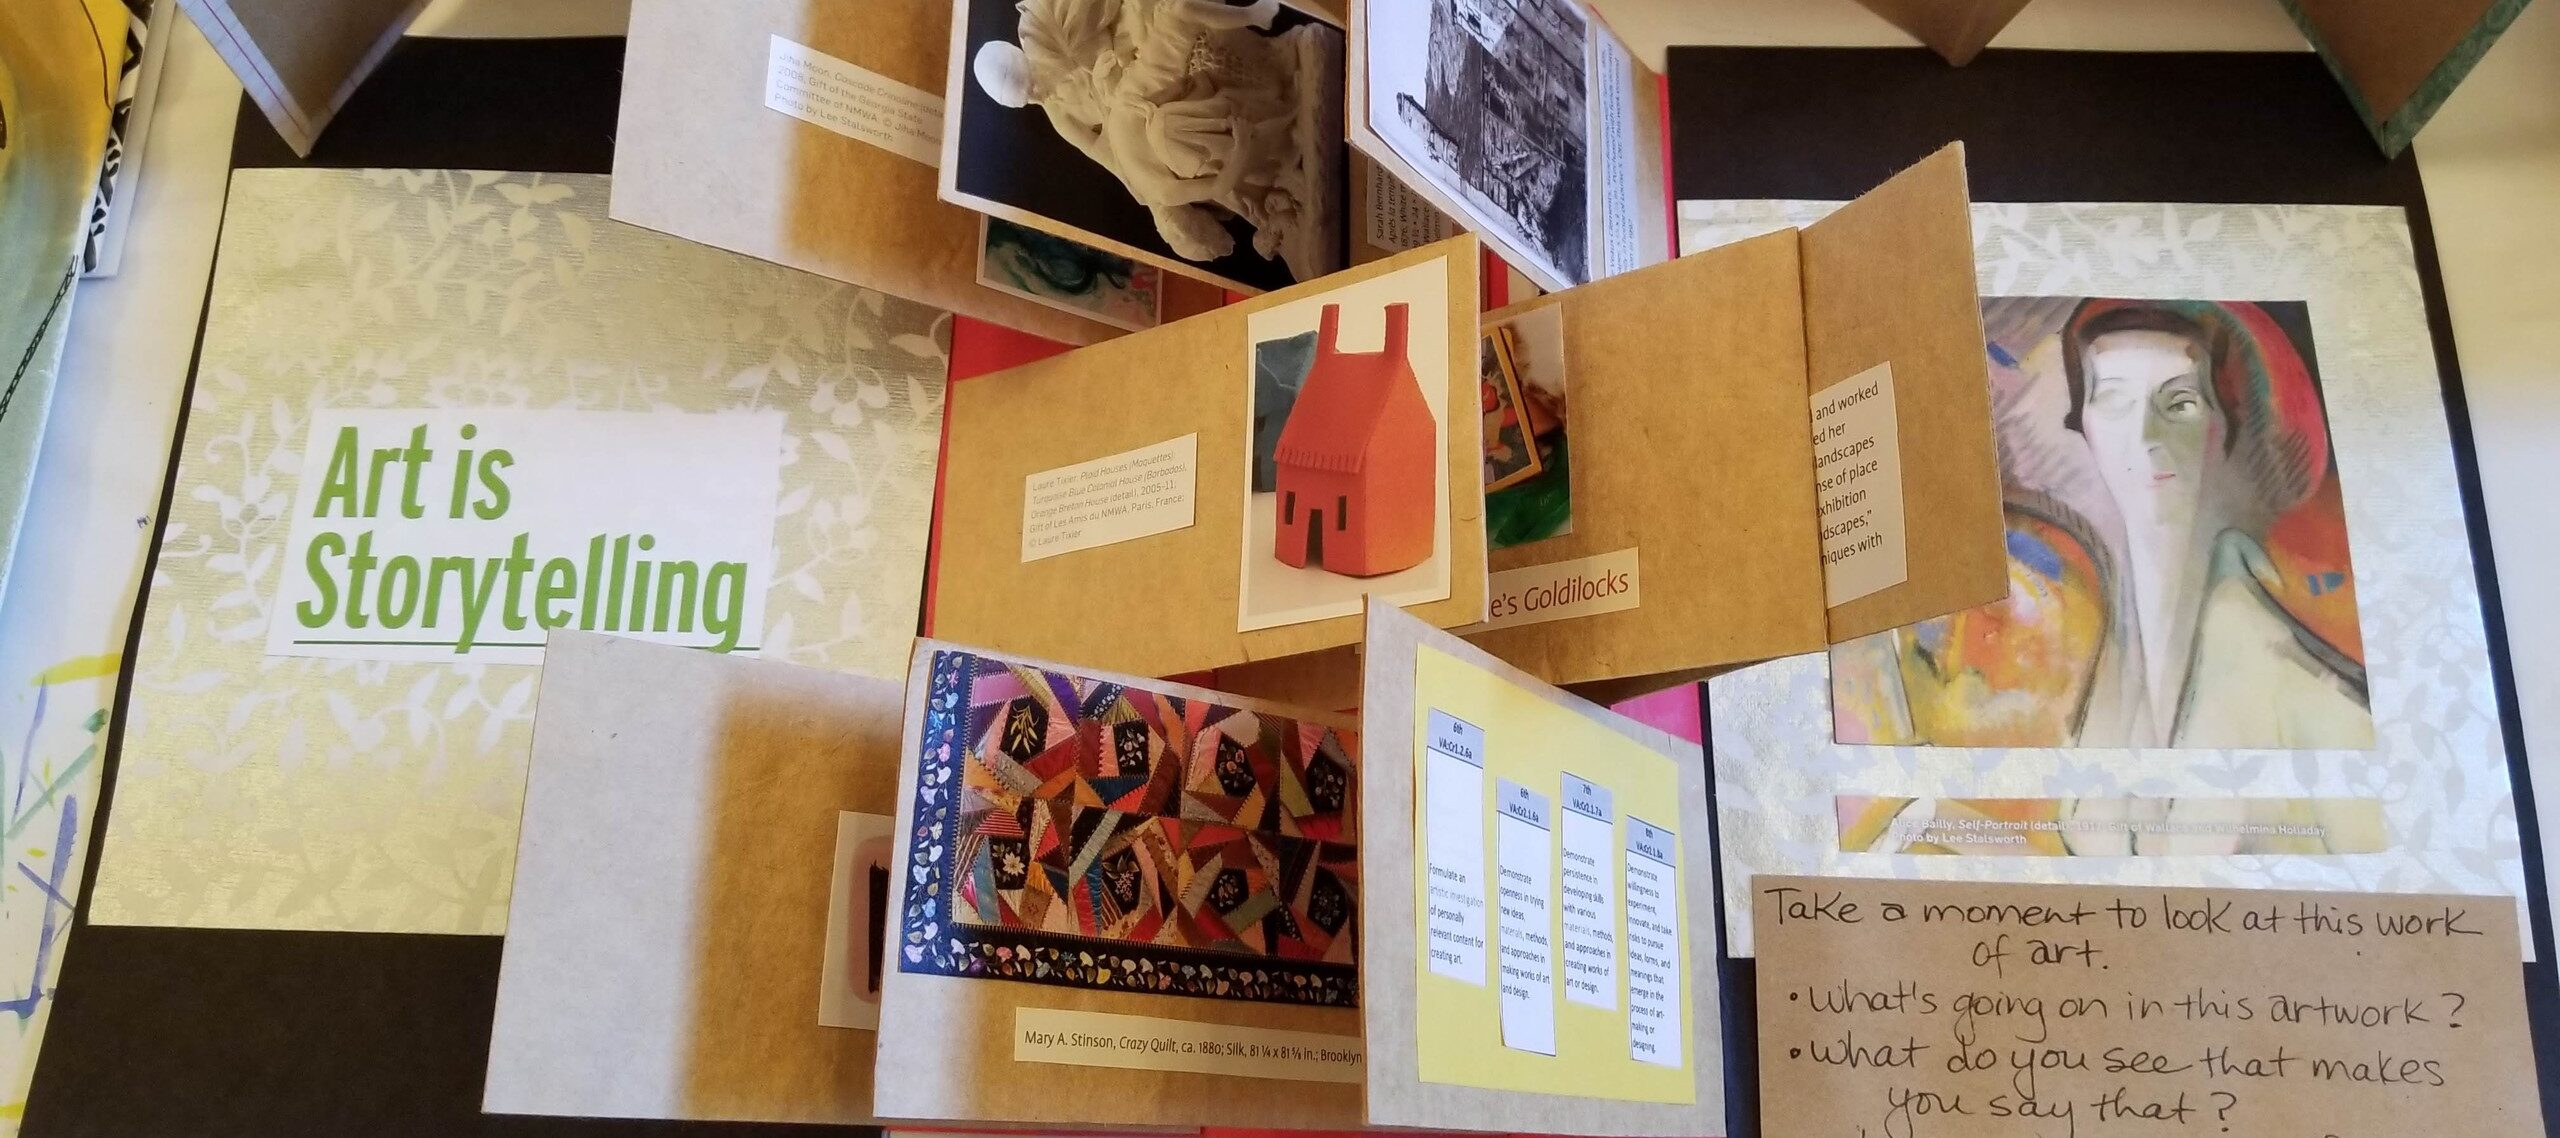 A birds-eyed view of a variety of artists books showing a variety of folded paper and works of art.